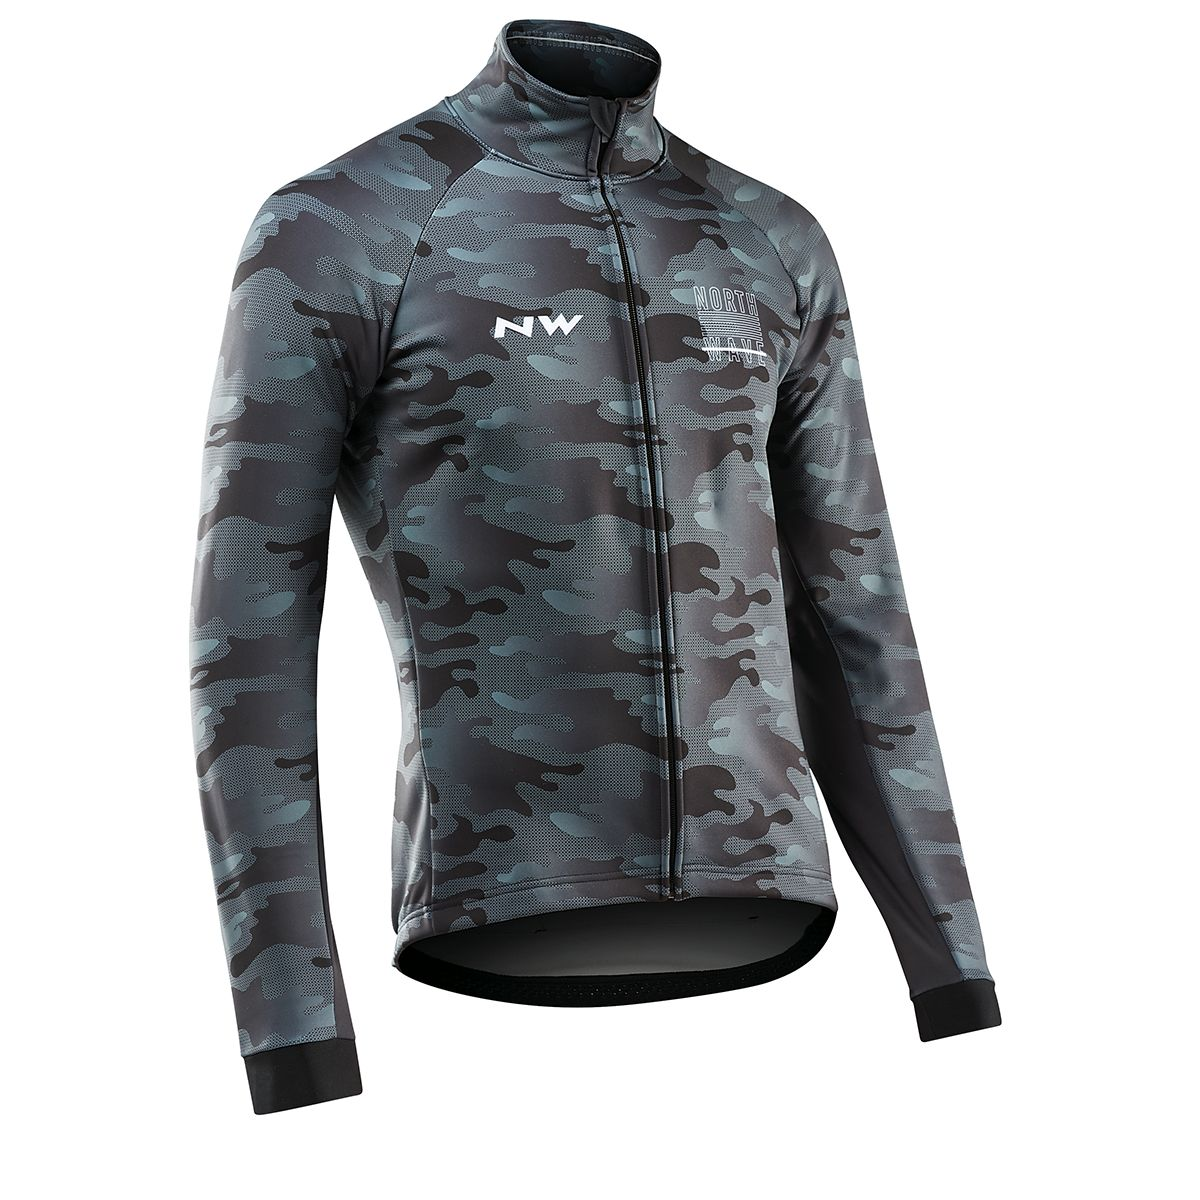 BLADE 3 JACKET TOTAL PROTECTION